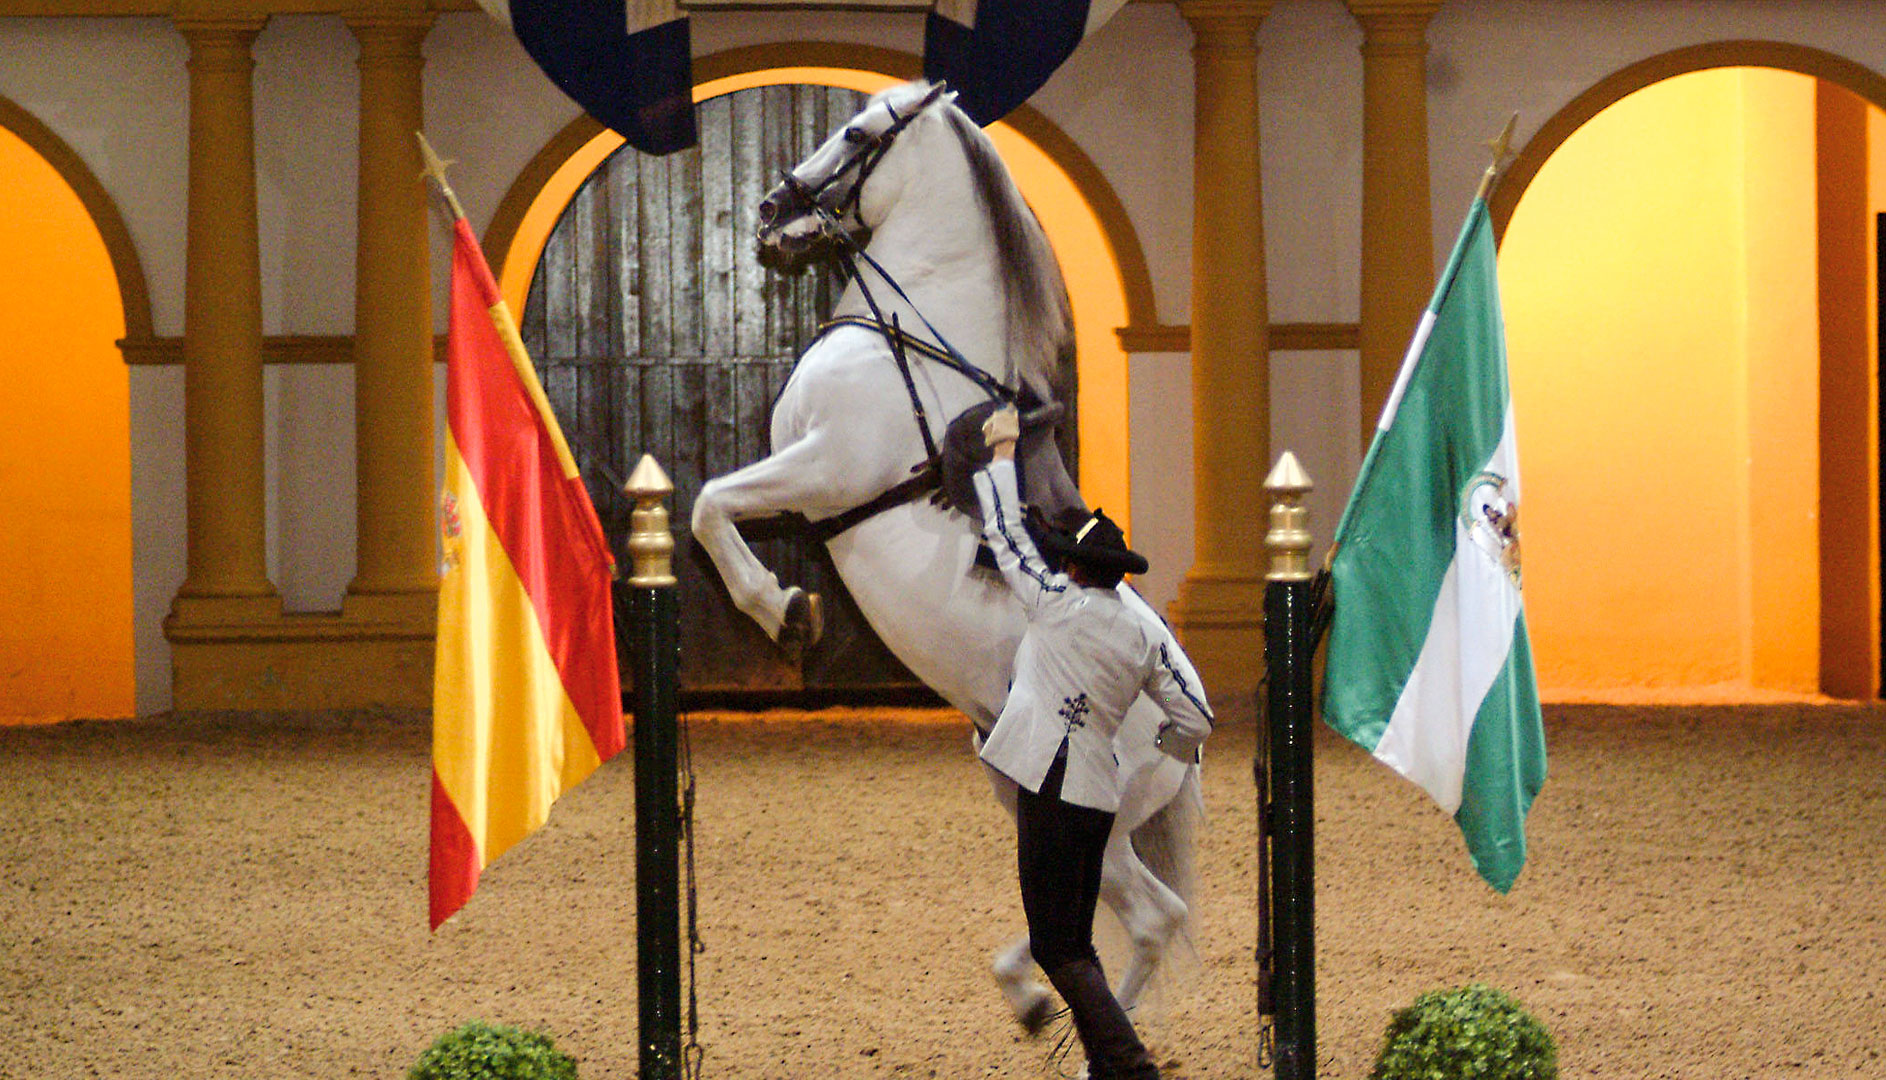 A Show by the Royal School of Equestrian Art of Jerez.